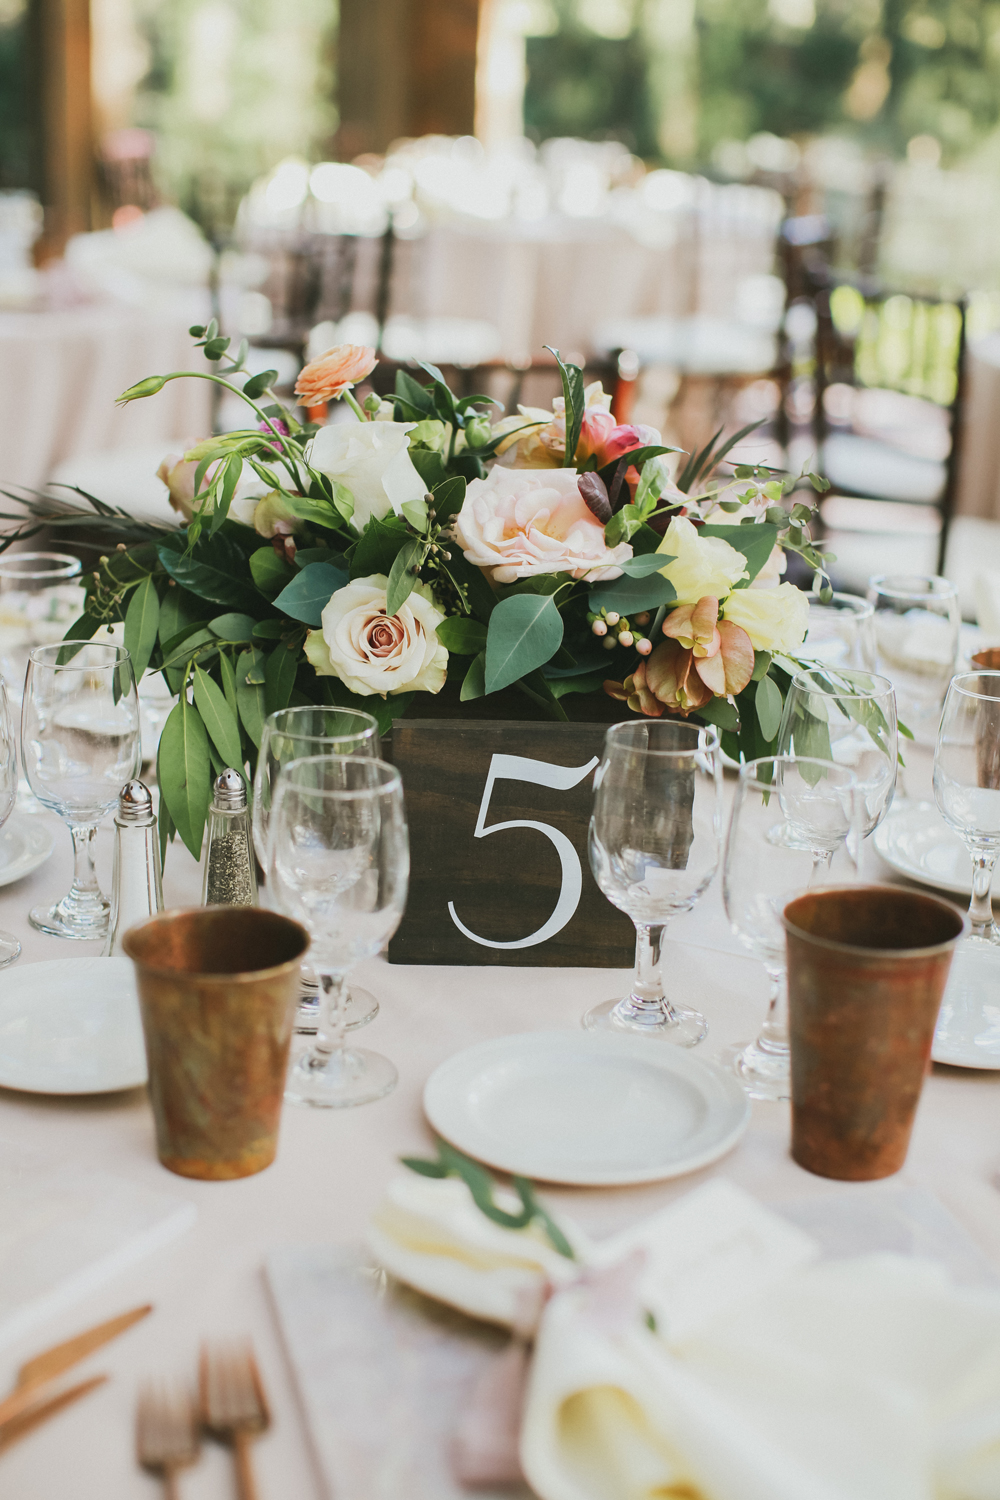 Lucky Day Events Co. // Calamigos Ranch Wedding // Forestry Films // Moody Dusty Rose Copper Romantic Wedding // Wooden Signage // Vintage Wedding